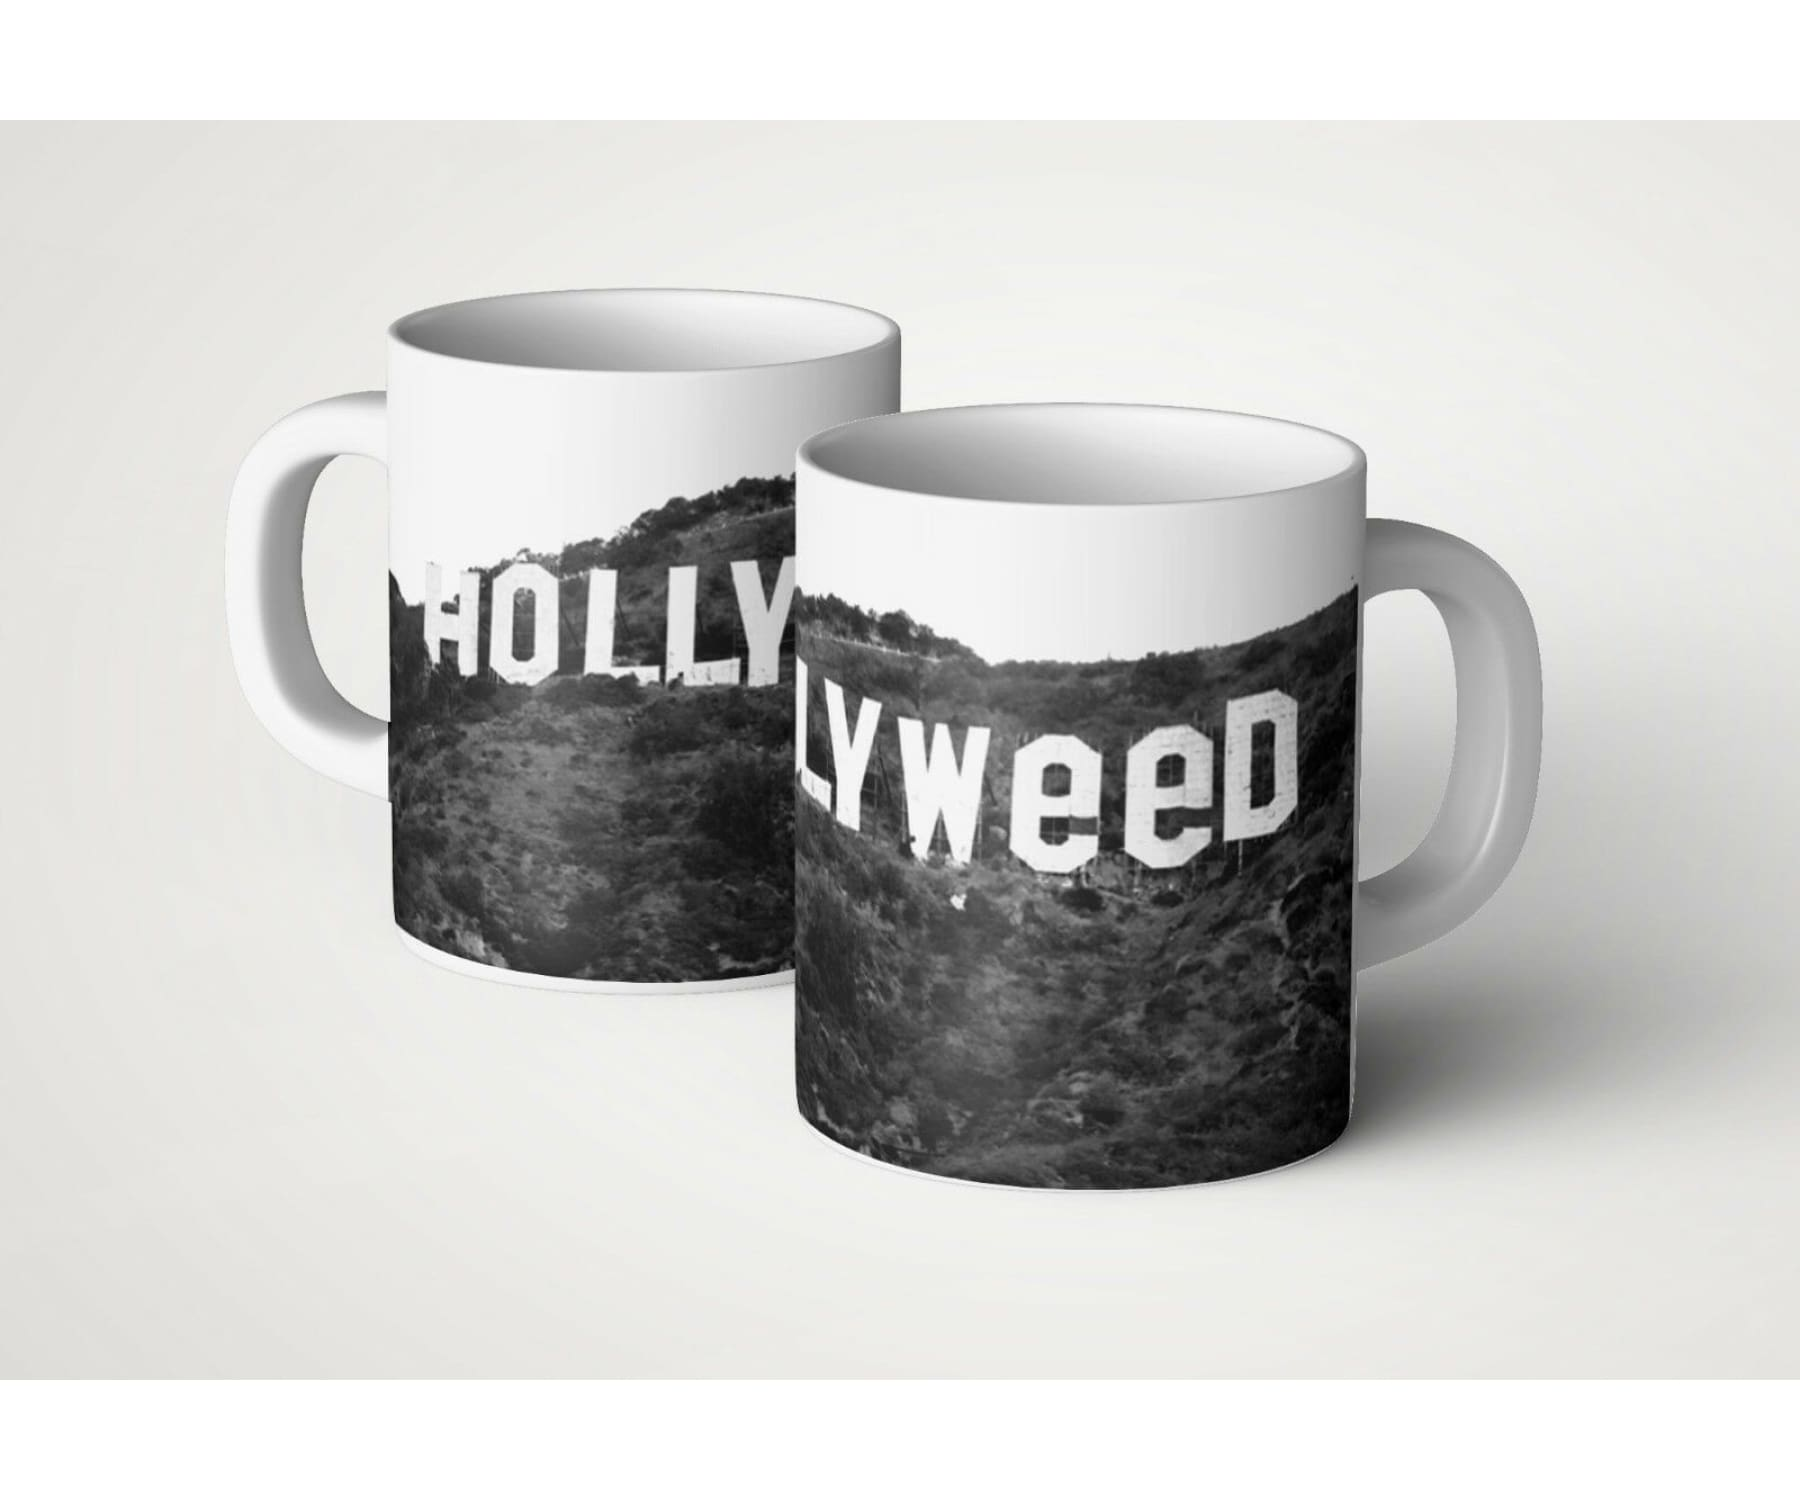 Hanf und Hemp - Hollyweed Kaffee Tasse Fun